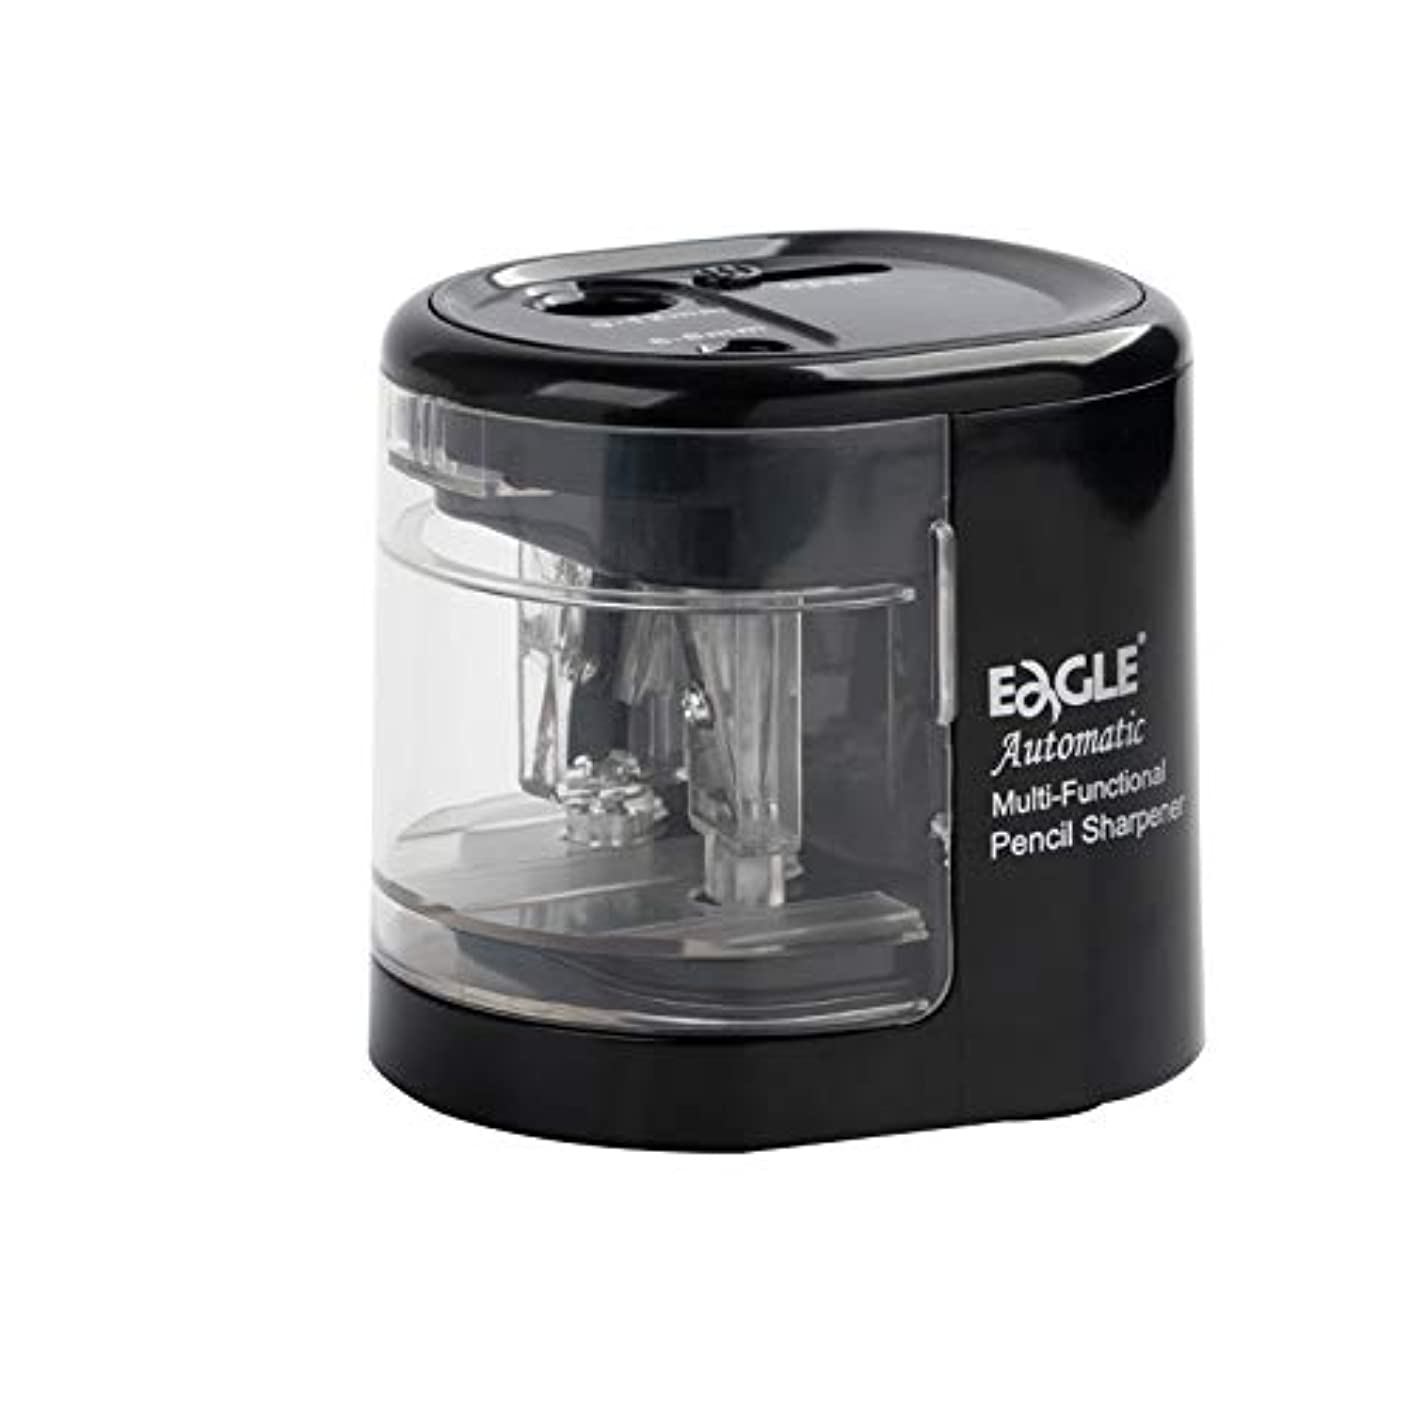 Eagle Double Hole Electric Pencil Sharpener,?Battery/USB Operated,?Fit For Different Size Pencils,?6-8mm,?9-12mm